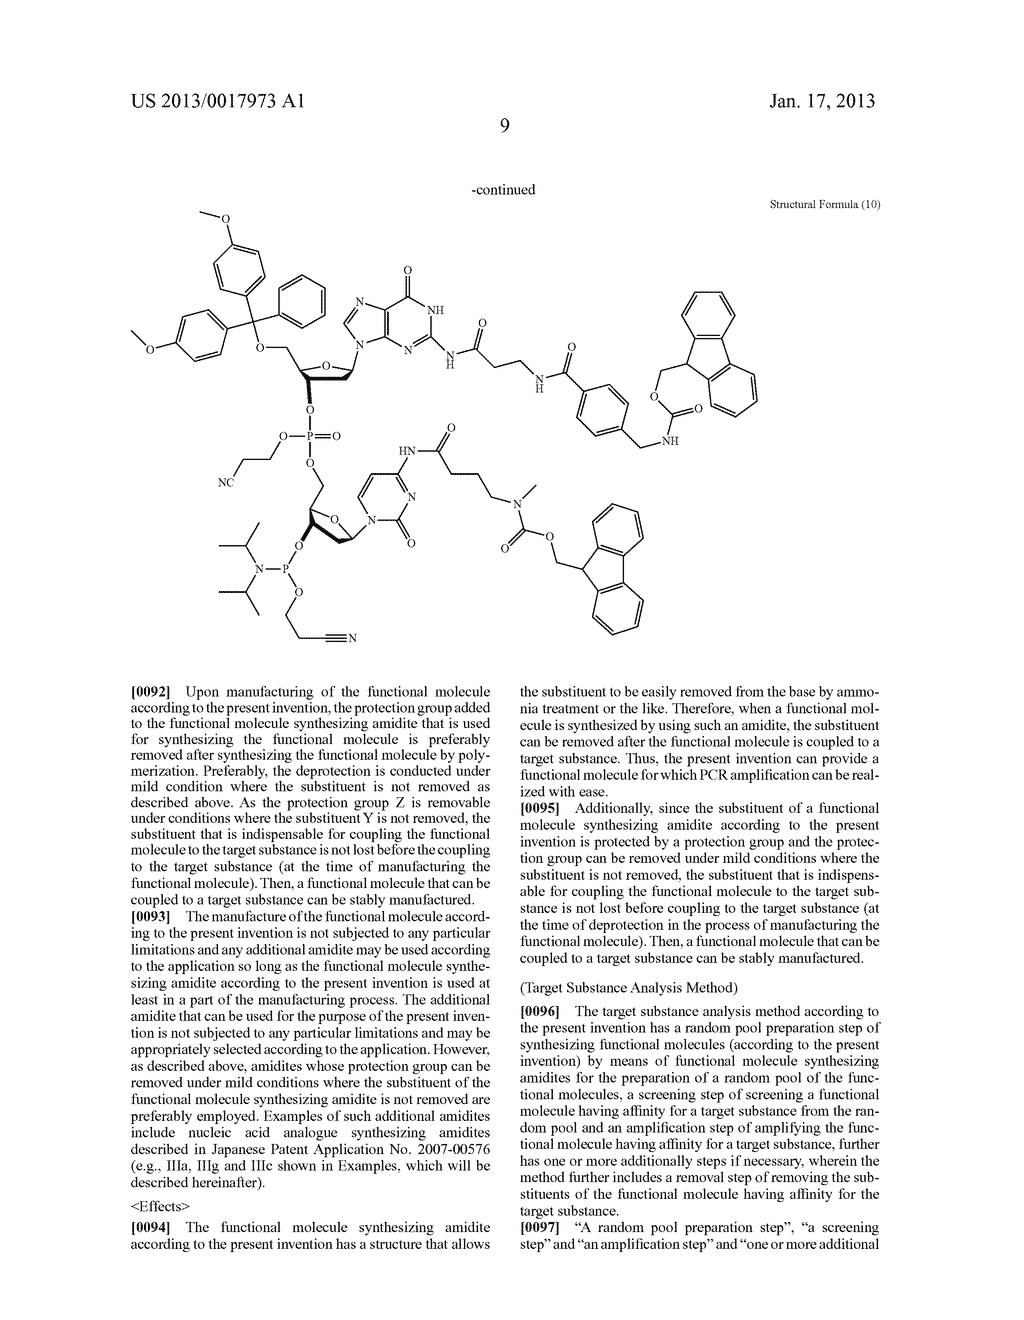 FUNCTIONAL MOLECULE, FUNCTIONAL MOLECULE SYNTHESIZING AMIDITE AND TARGET     SUBSTANCE ANALYSIS METHOD - diagram, schematic, and image 59